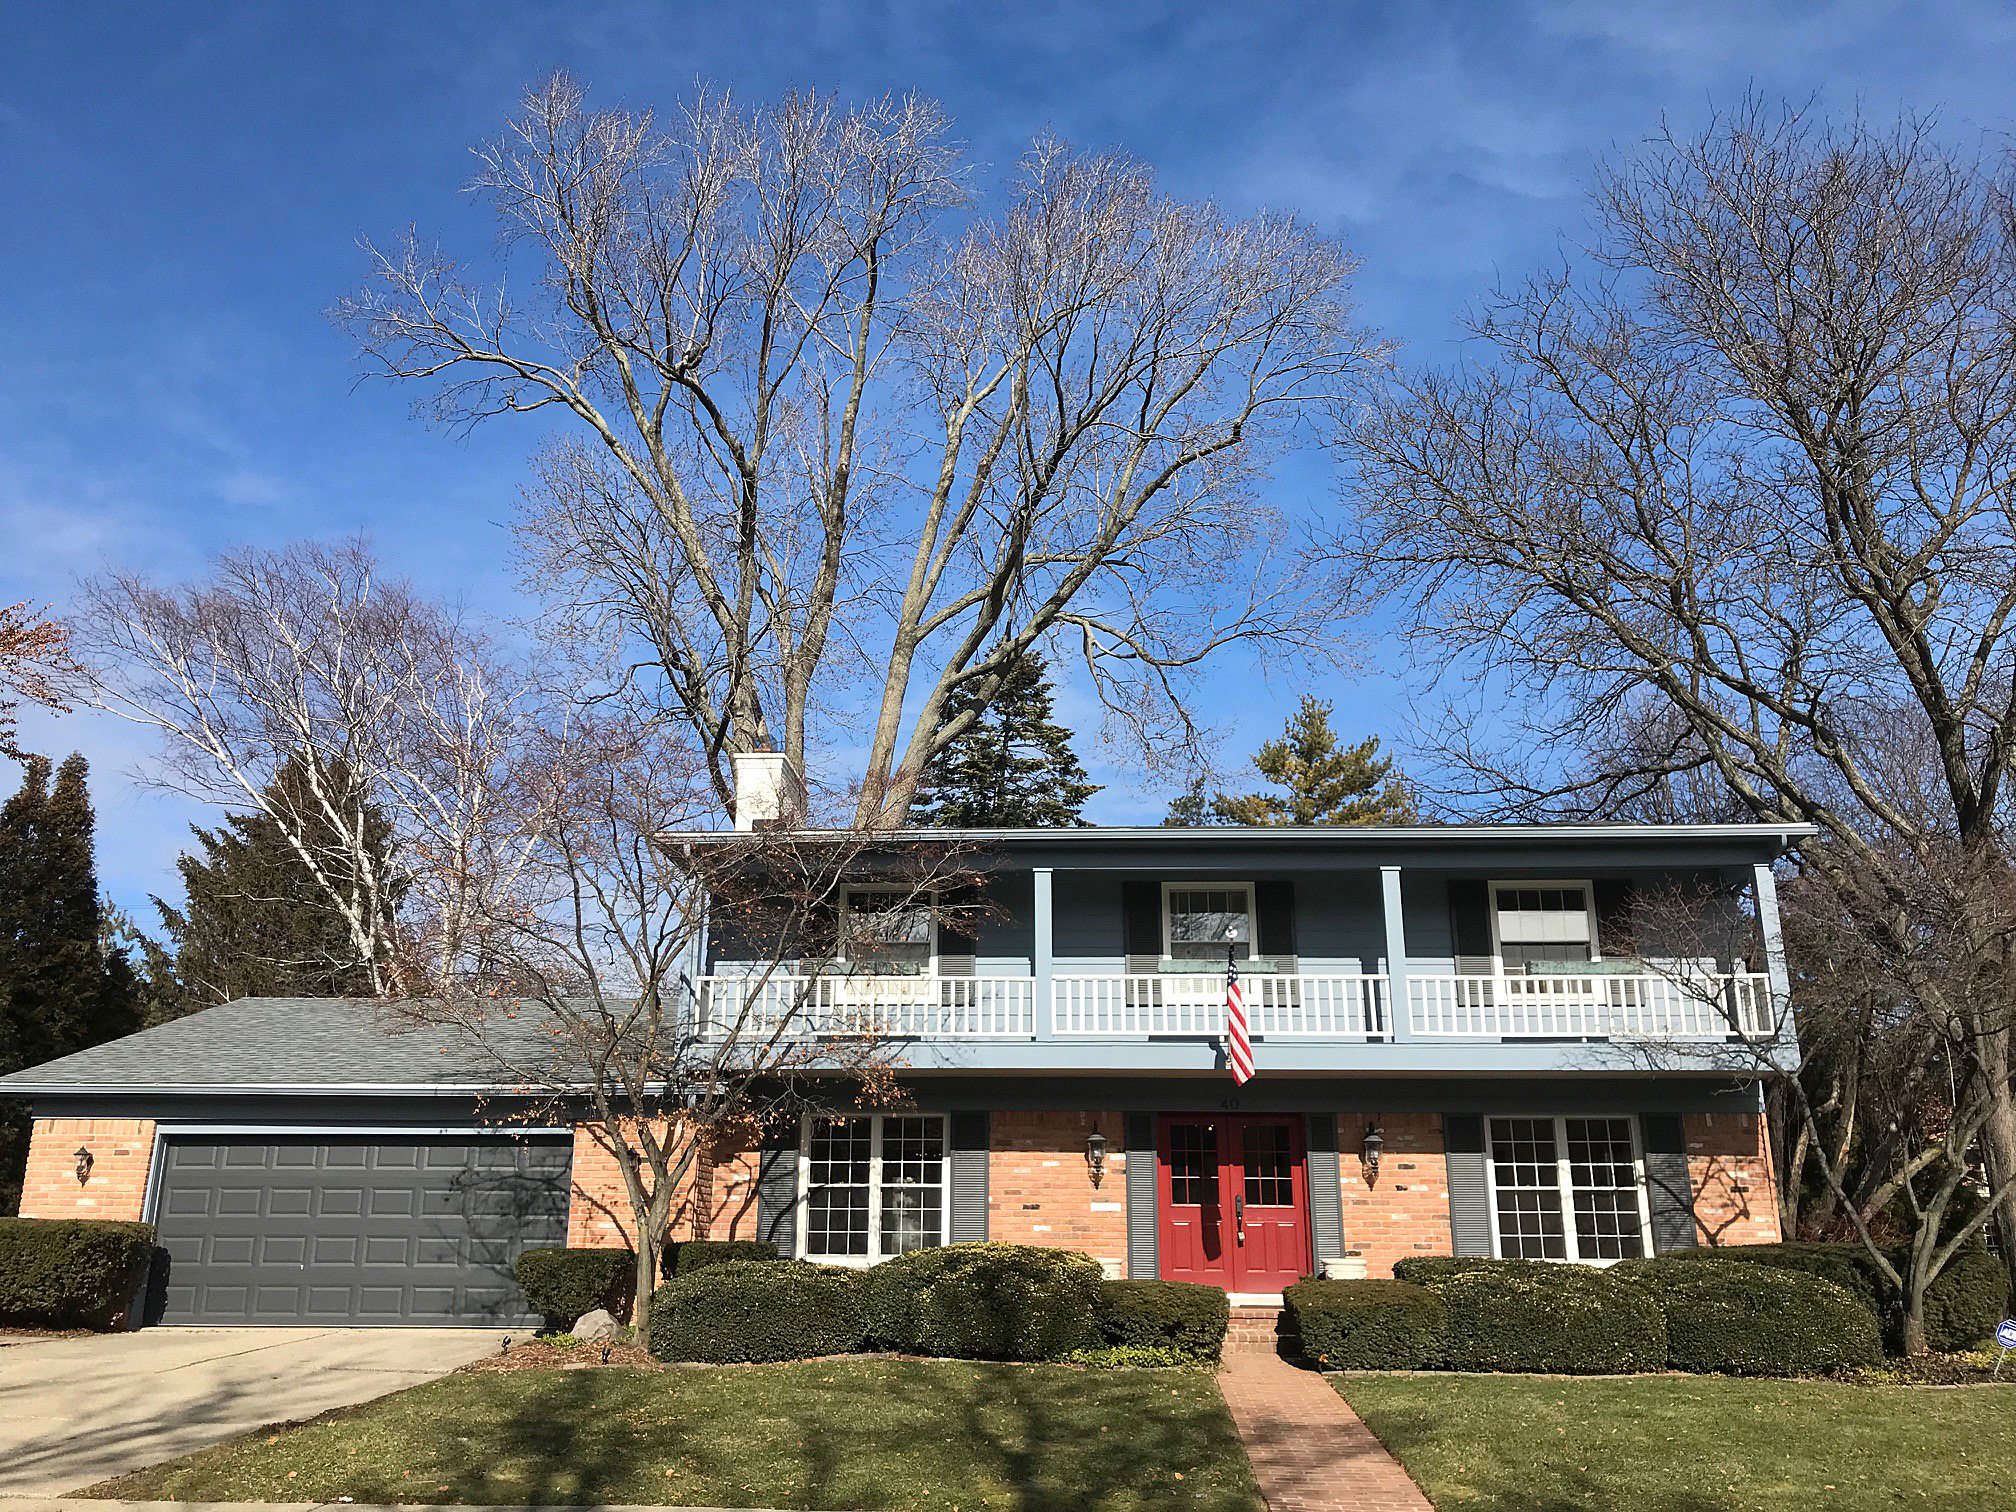 Cathy Champion, Real Estate, Grosse Pointe, Michigan